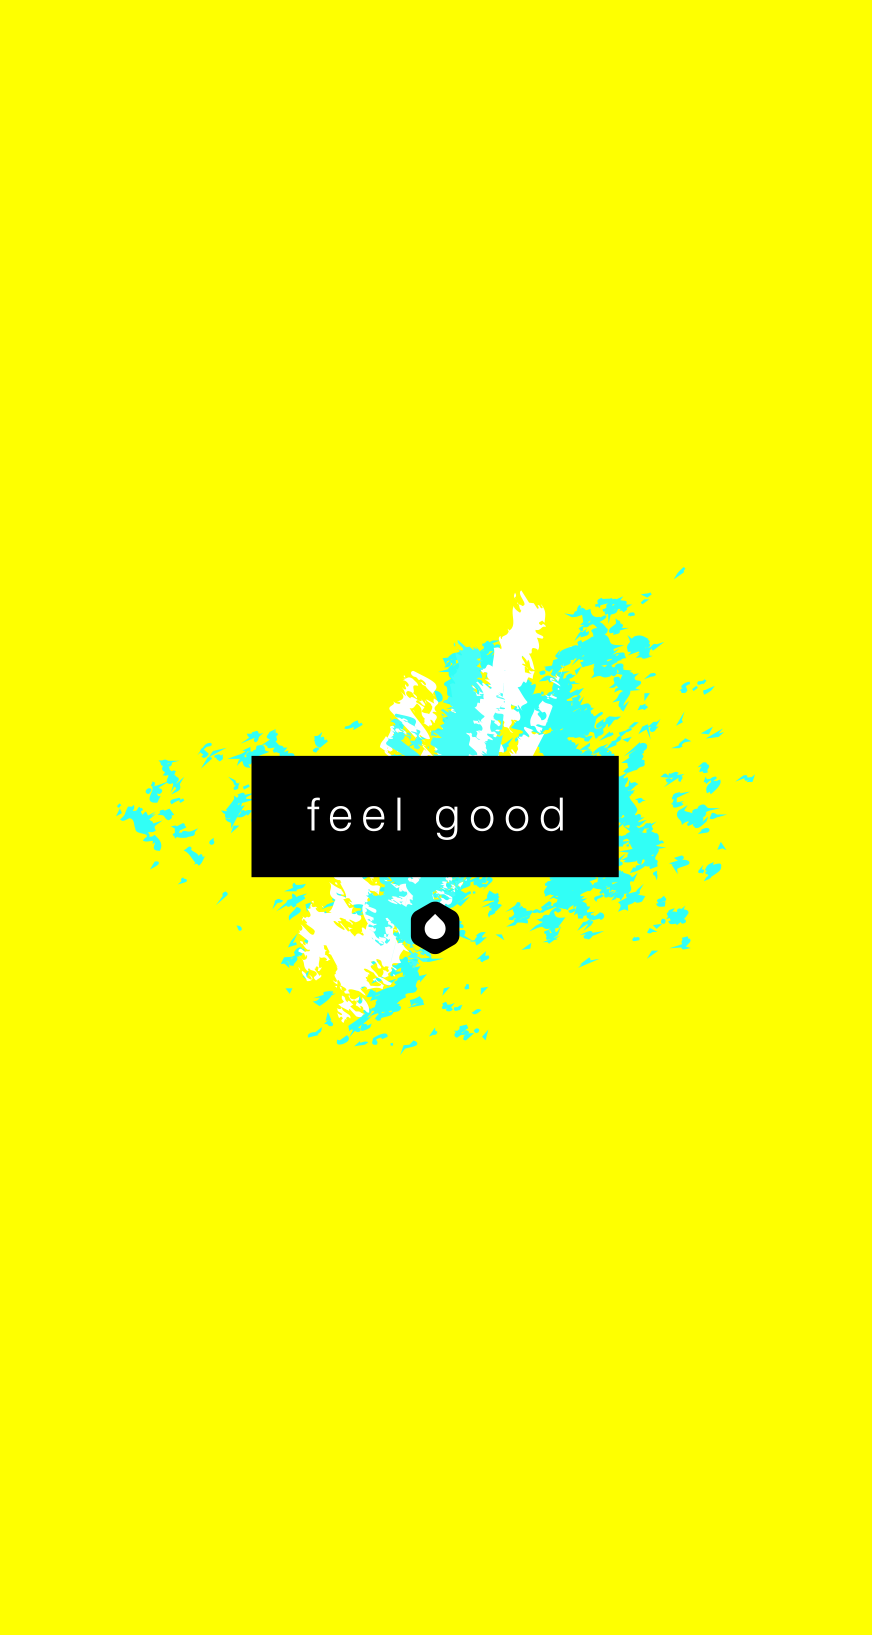 Wallpaper-FeelGood-iPhone6